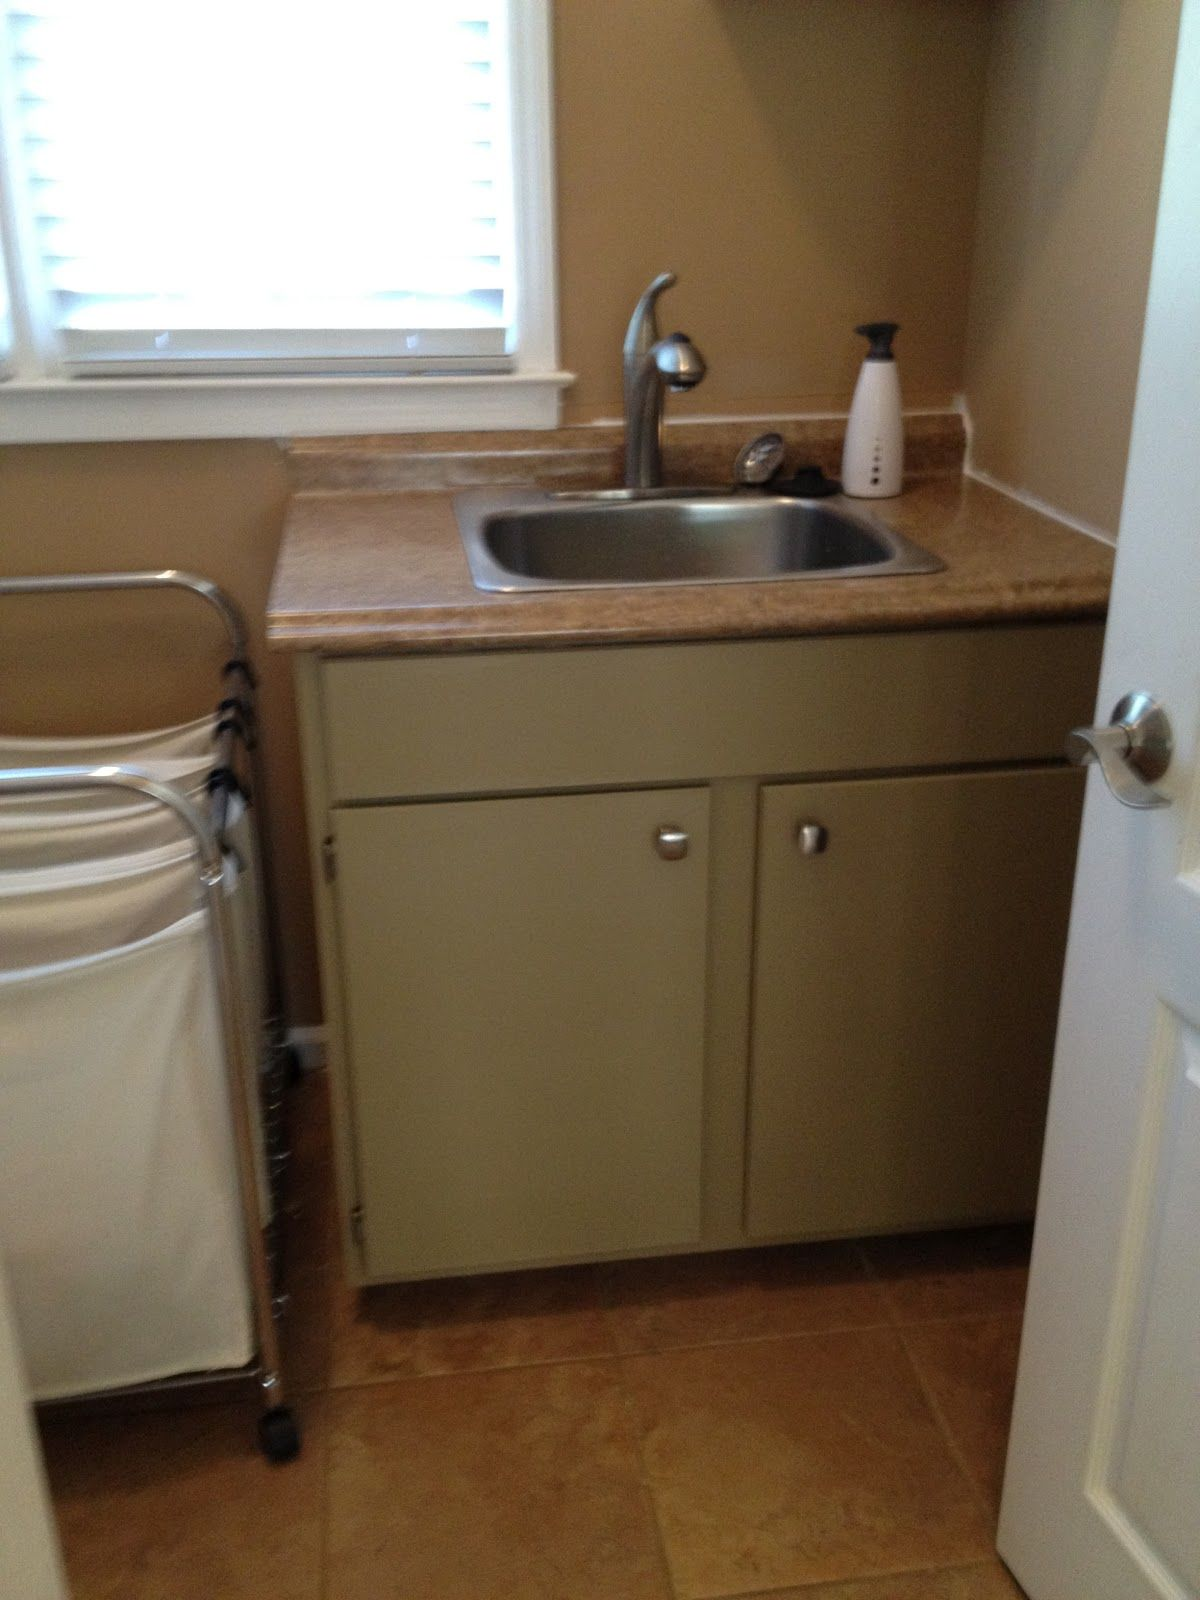 Laundry Room Update The Sink And Countertop Sink Laundry Room Update Laundry Room Sink